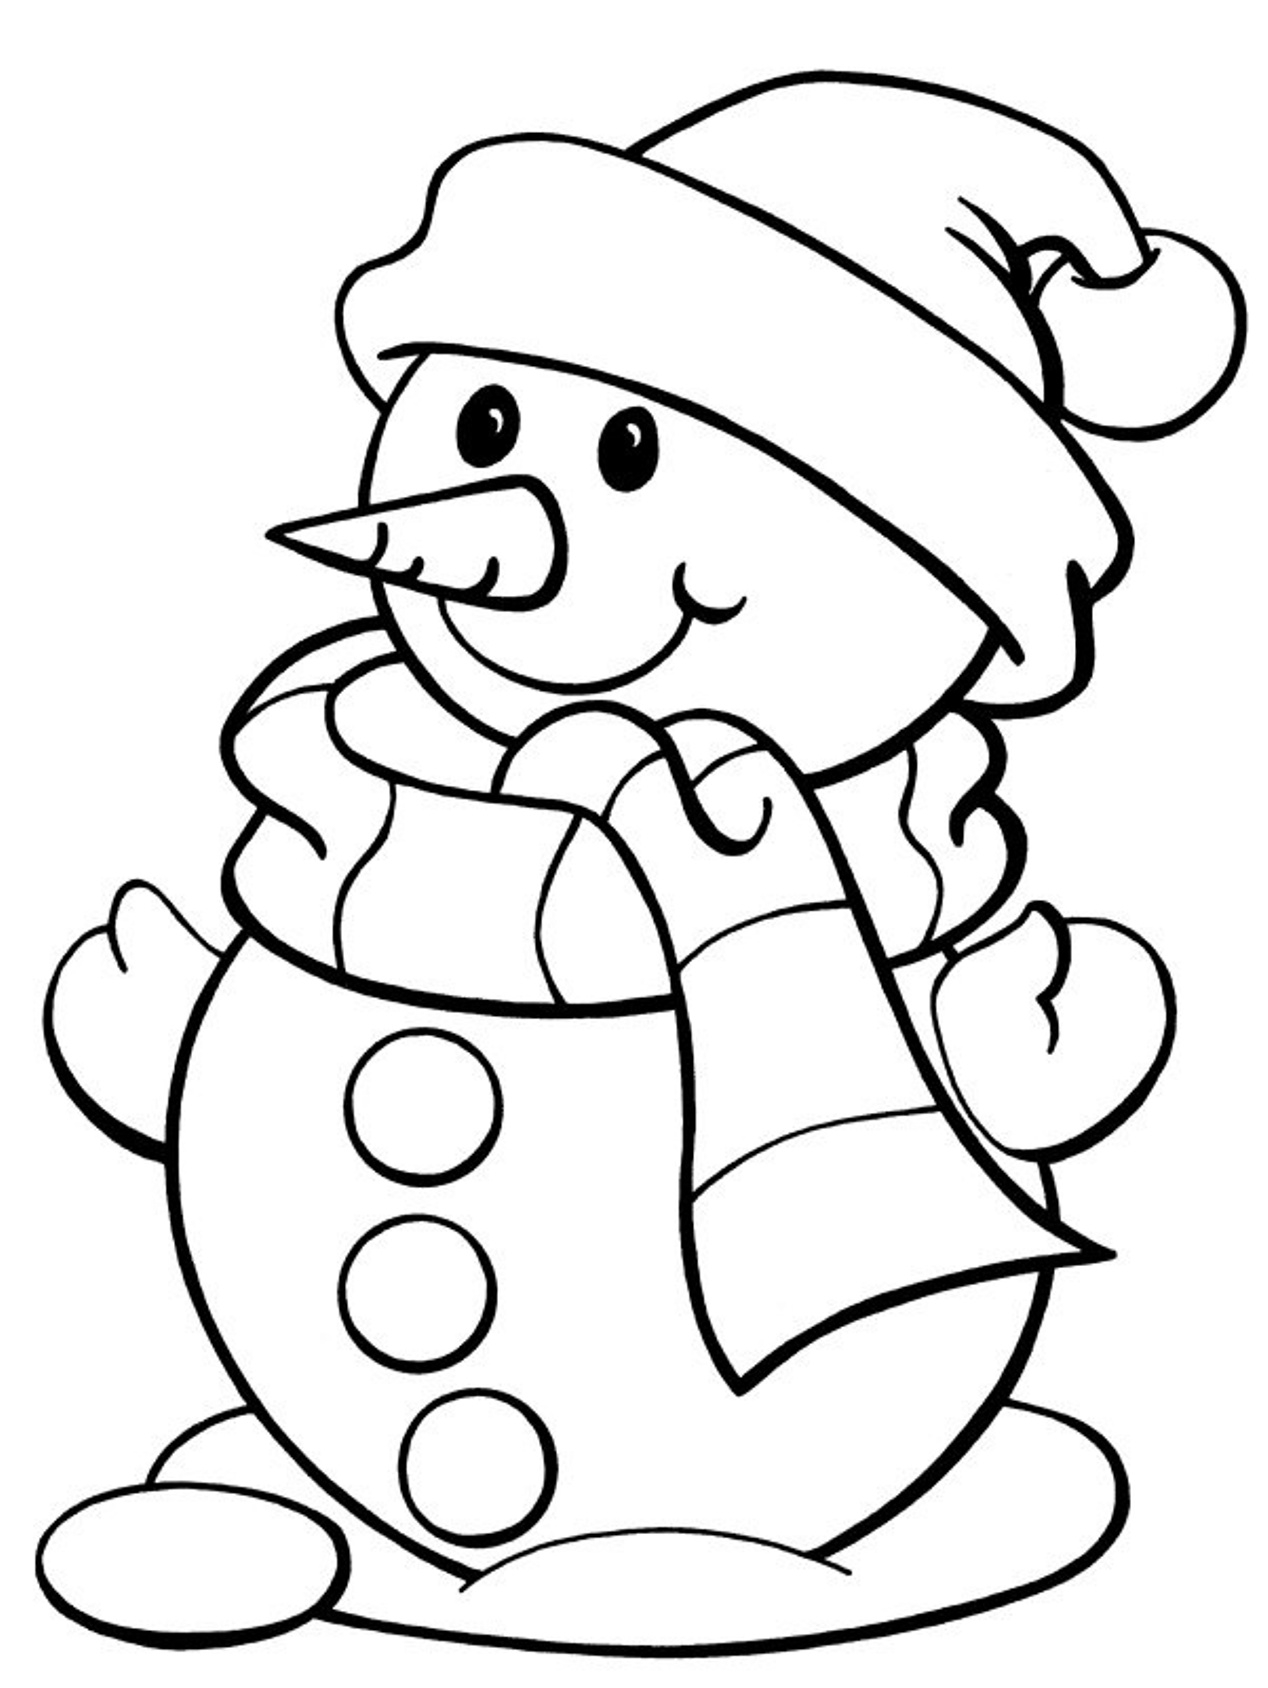 Coloring Pages Free Winter. Coloring Page Free Pages Winter Snowman  Of